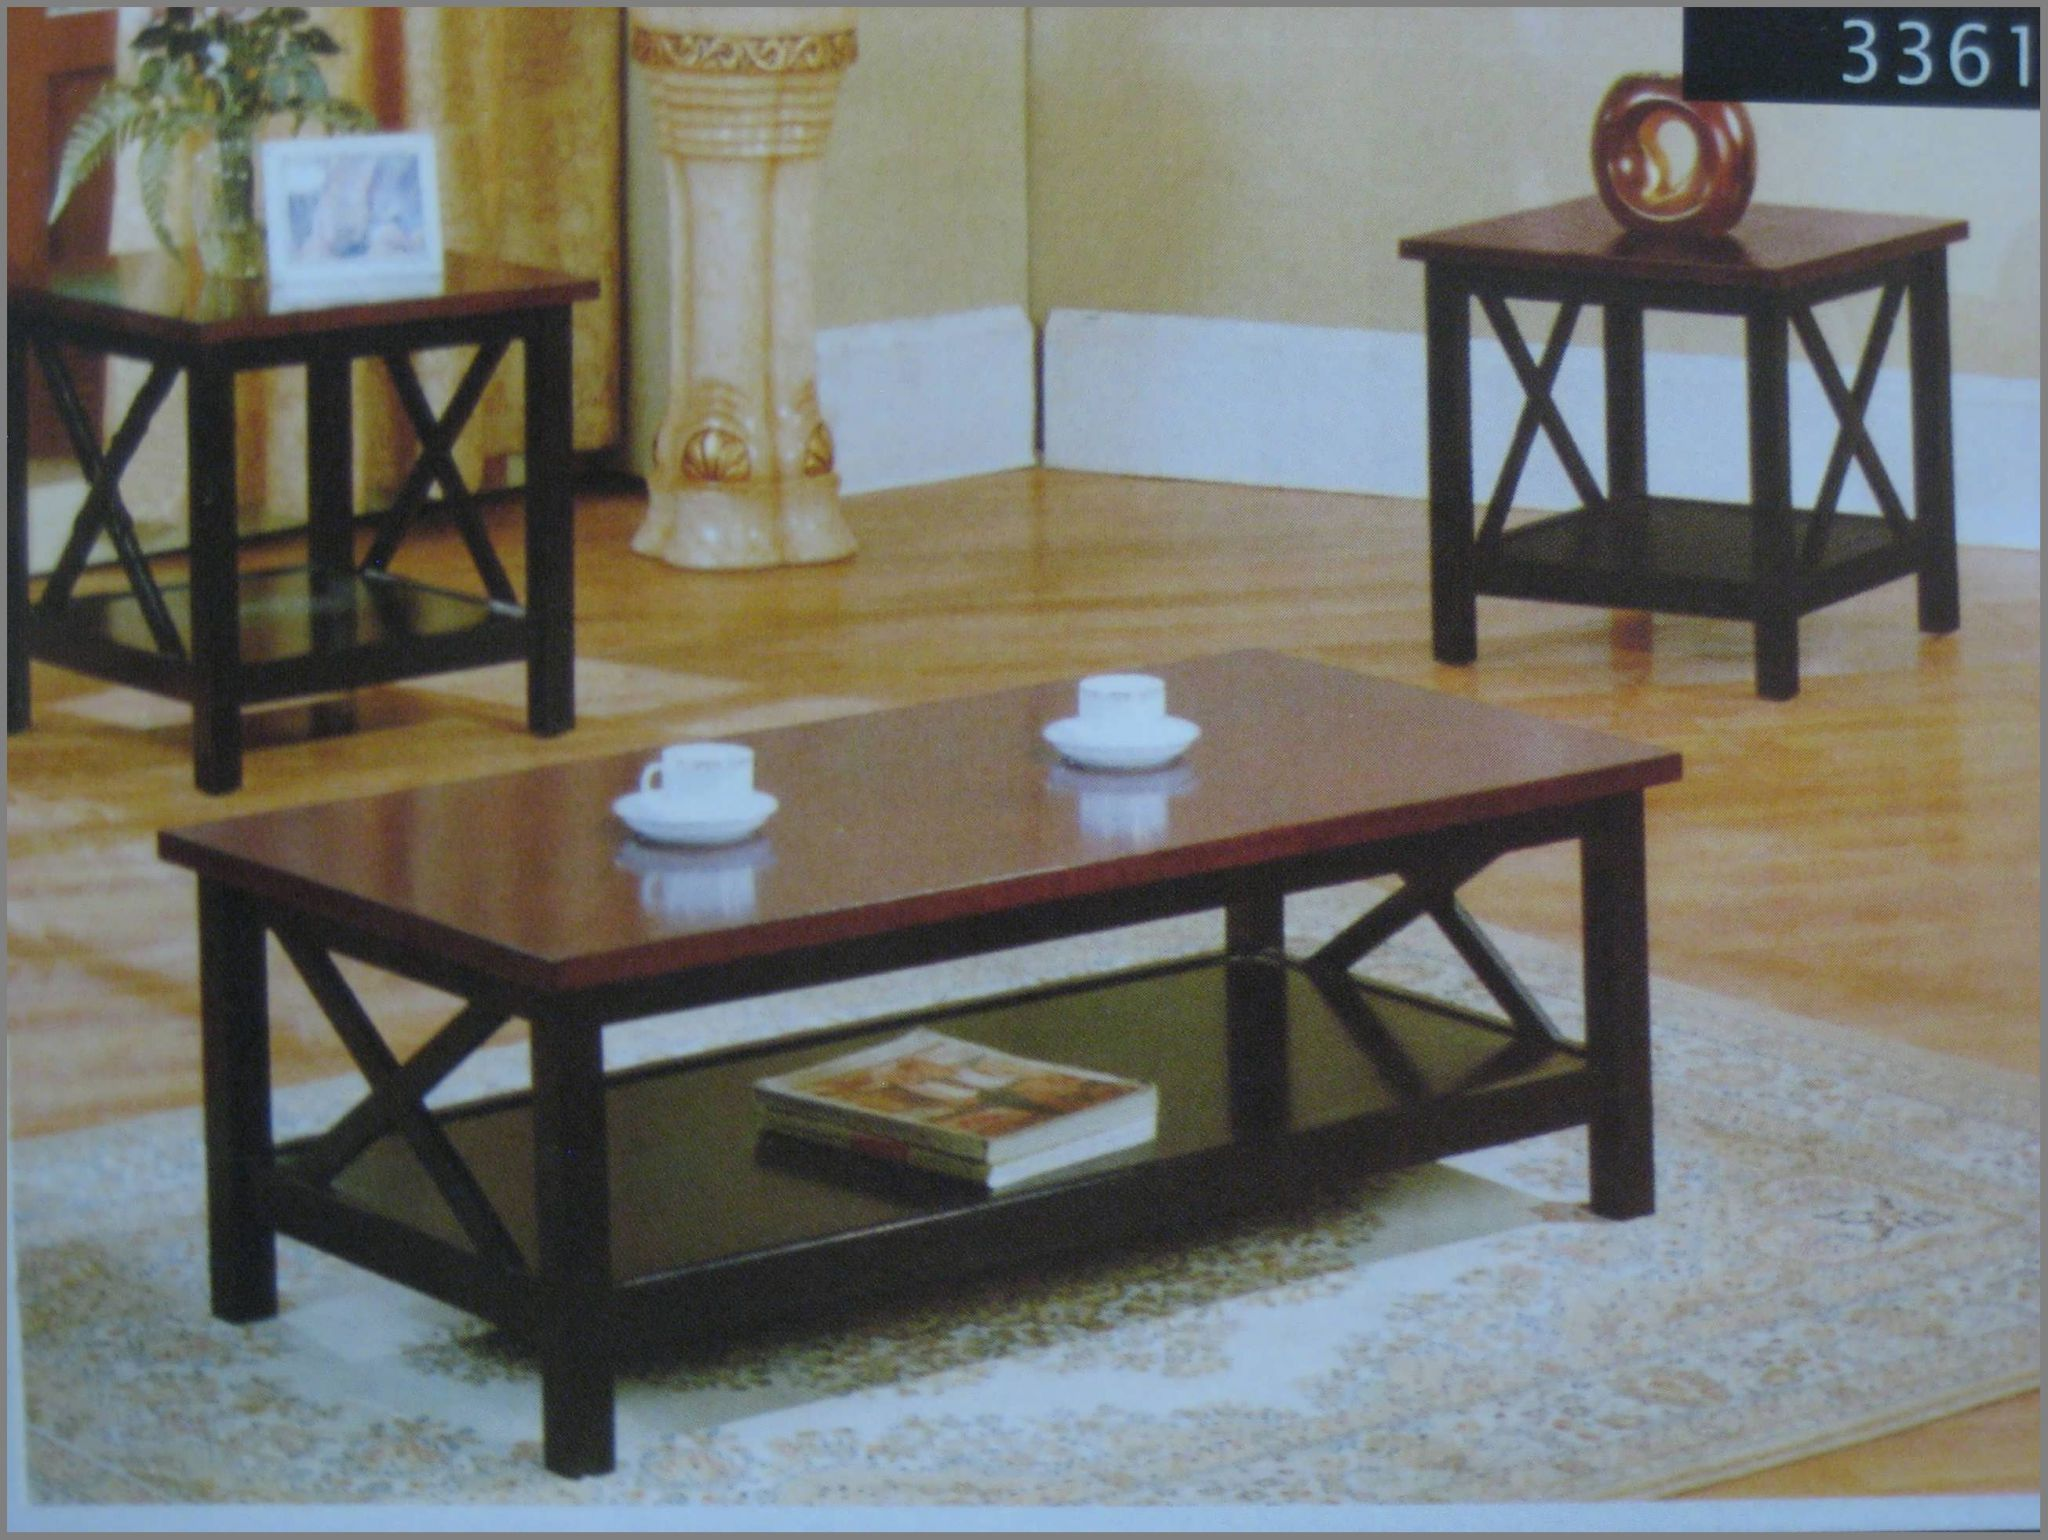 coffee table design ideas and side set inspirational great black sets with end tables popular dark wood round glass top light blue bedside lamps porcelain tile living room clear